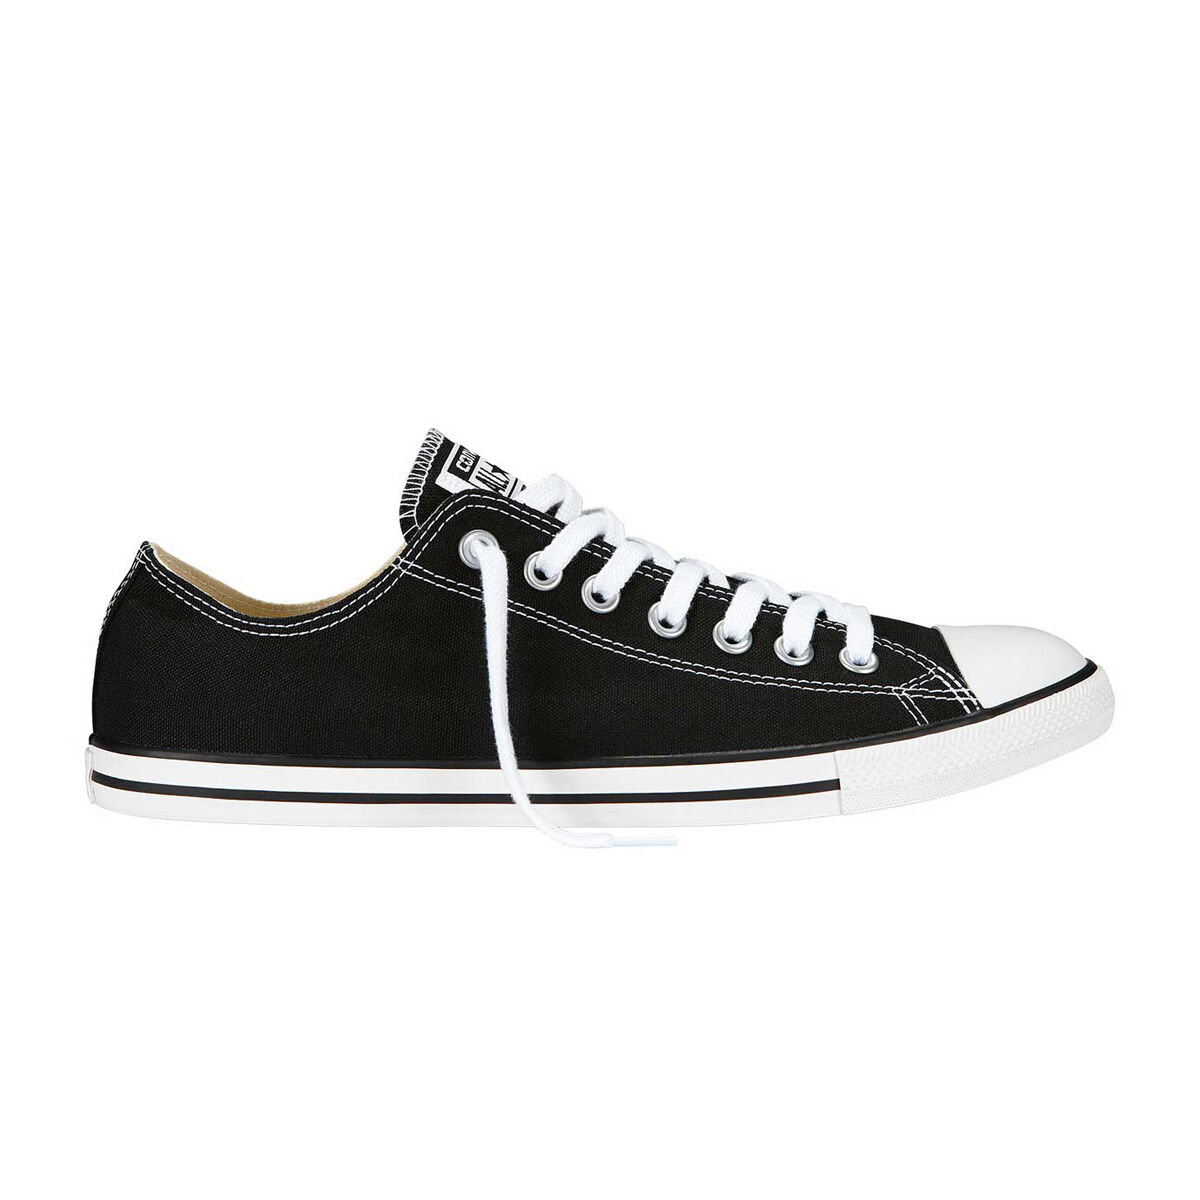 Converse Chuck Taylor All Star Lean Low Top Casual Shoes Black US 11